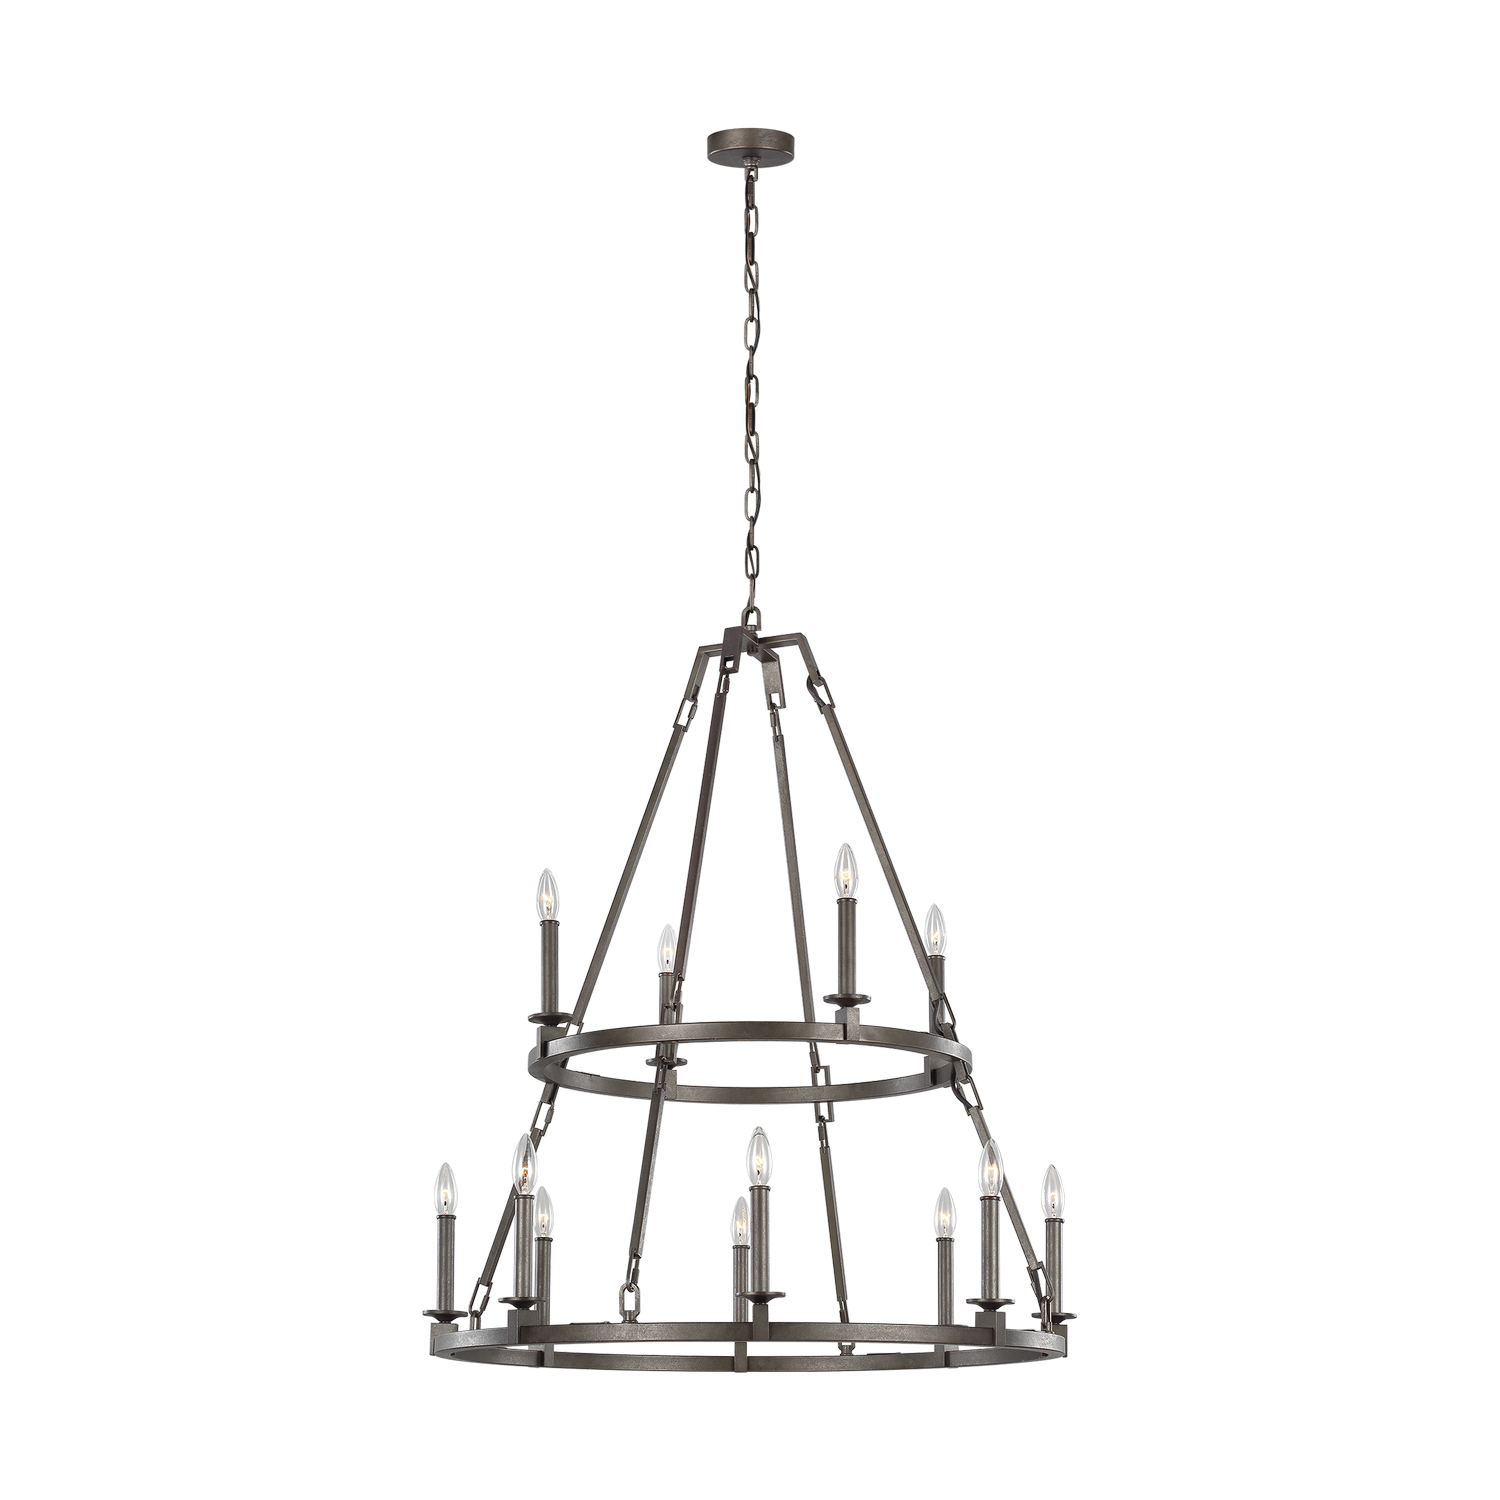 12 Light Chandelier from the Landen collection by Feiss F321512SMS